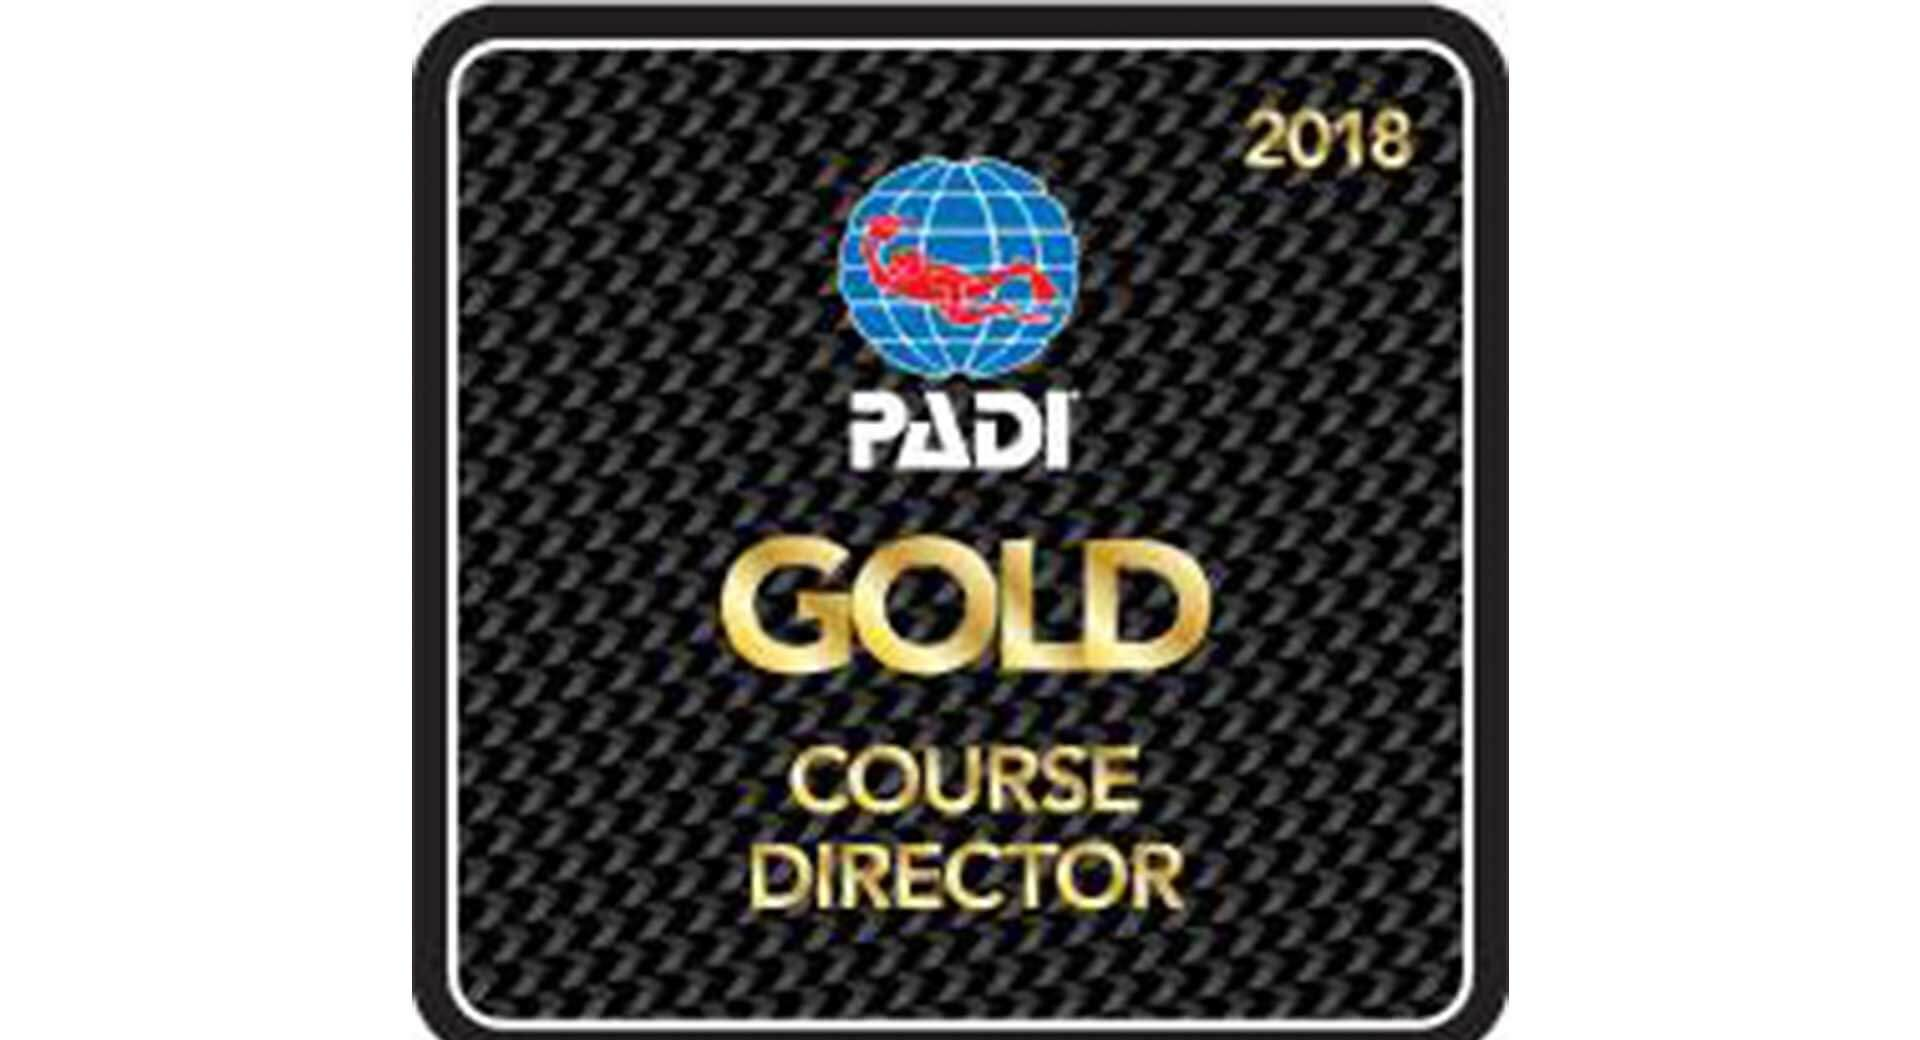 Darren Gaspari – PADI Gold Course Director Award 2018